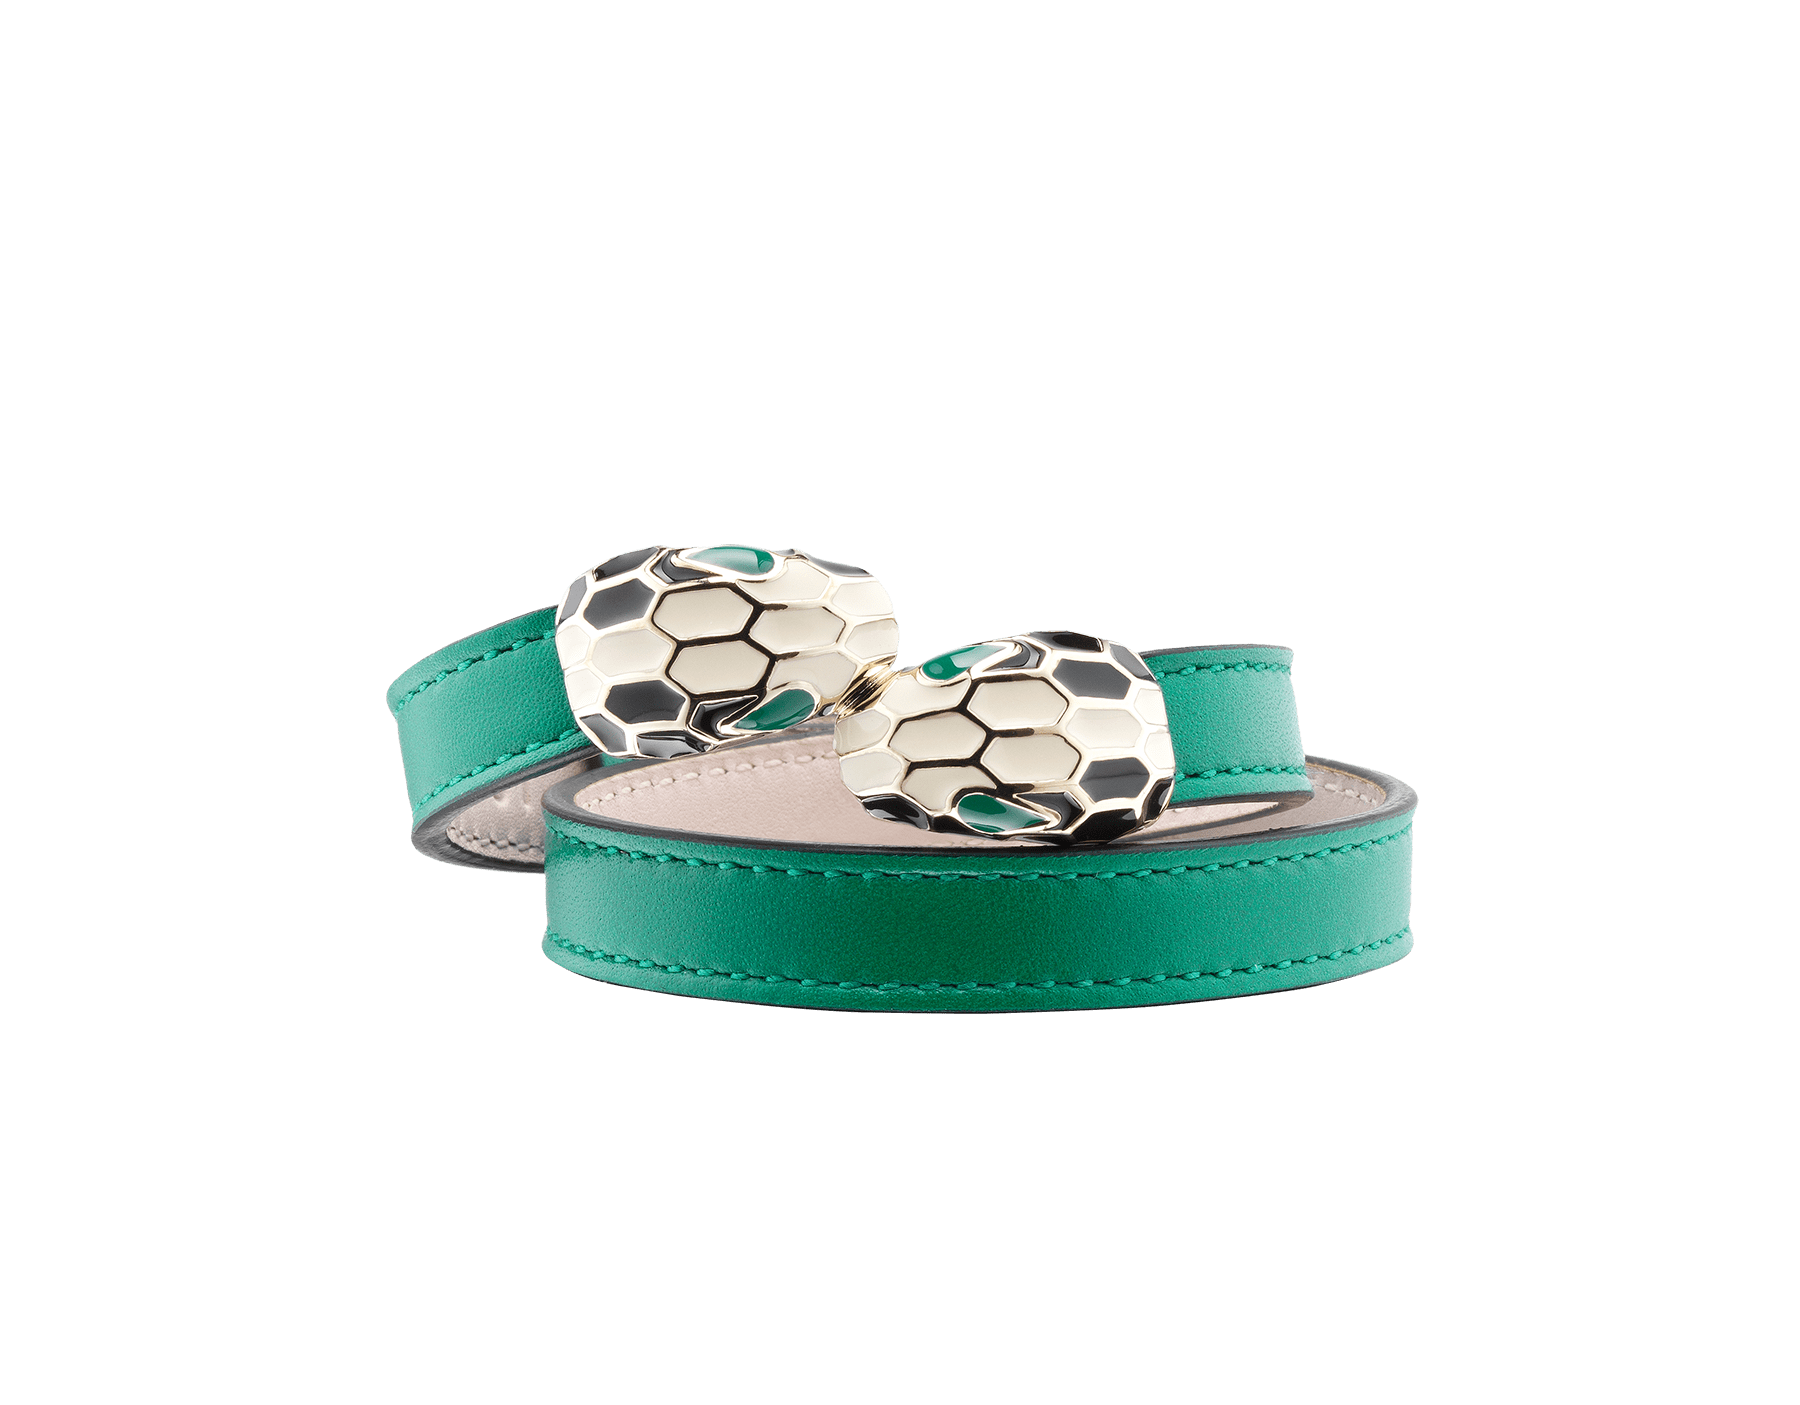 Multi-coiled bracelet in emerald green calf leather. Brass light gold plated iconic contraire Serpenti head closure in black and white enamel with malachite enamel eyes. 39997 image 1